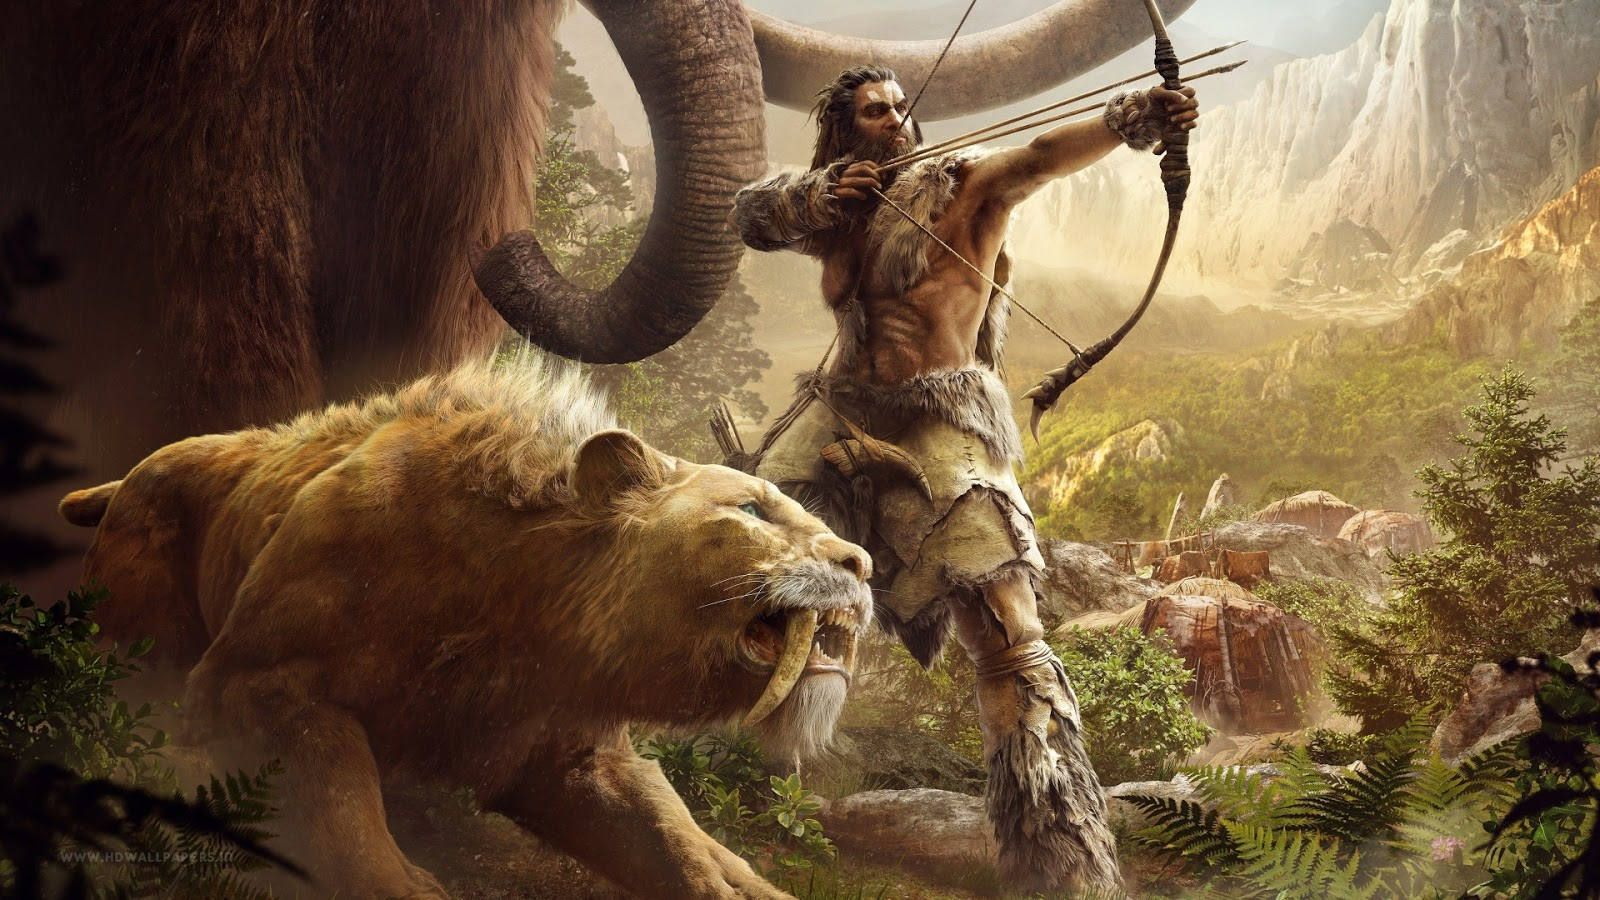 Far Cry primal Game Wallpaper HD for Android